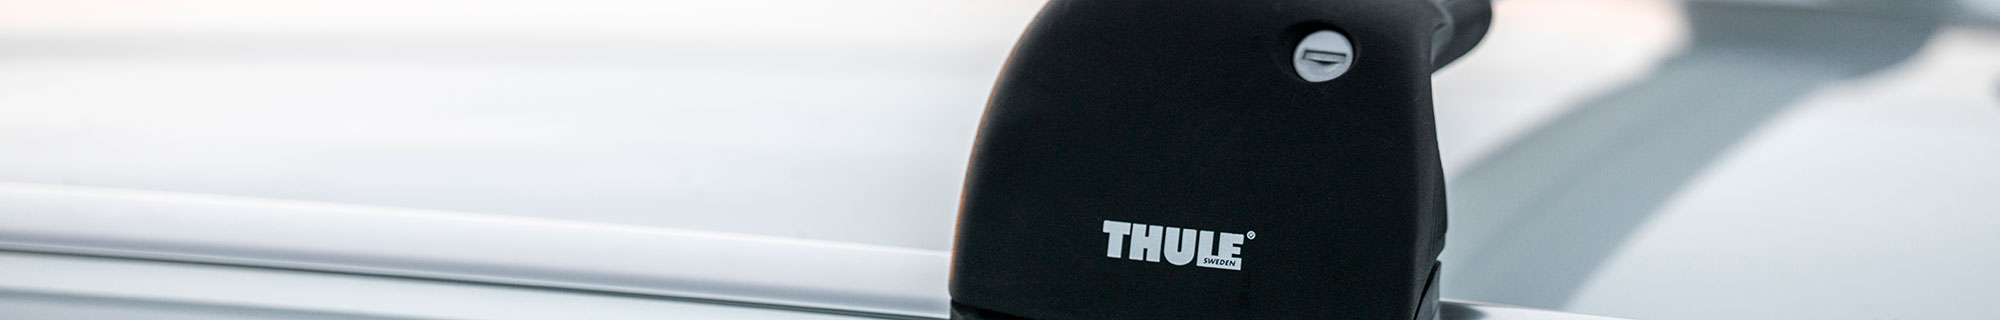 Thule roof racks accessories